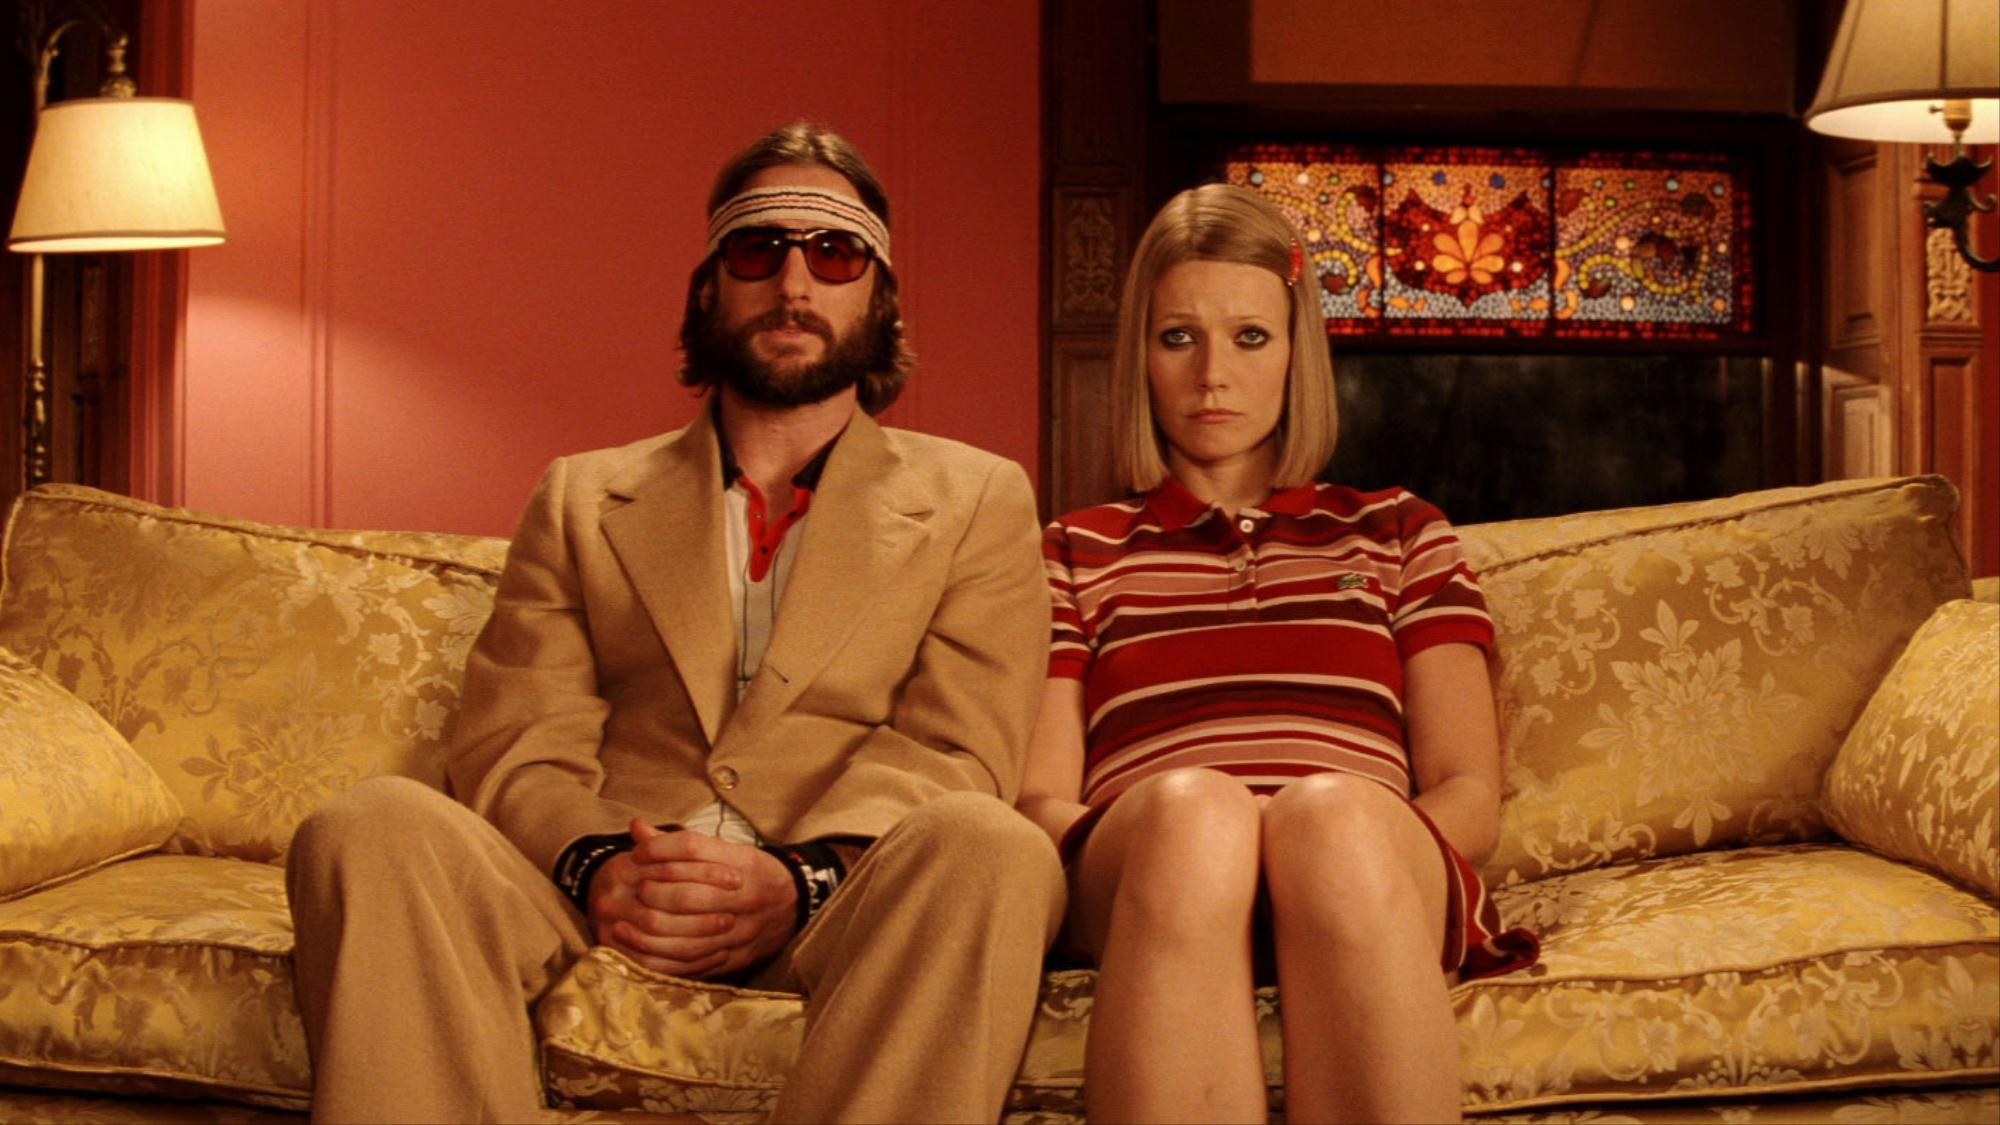 Turn Your Life Into A Wes Anderson Movie By Putting On